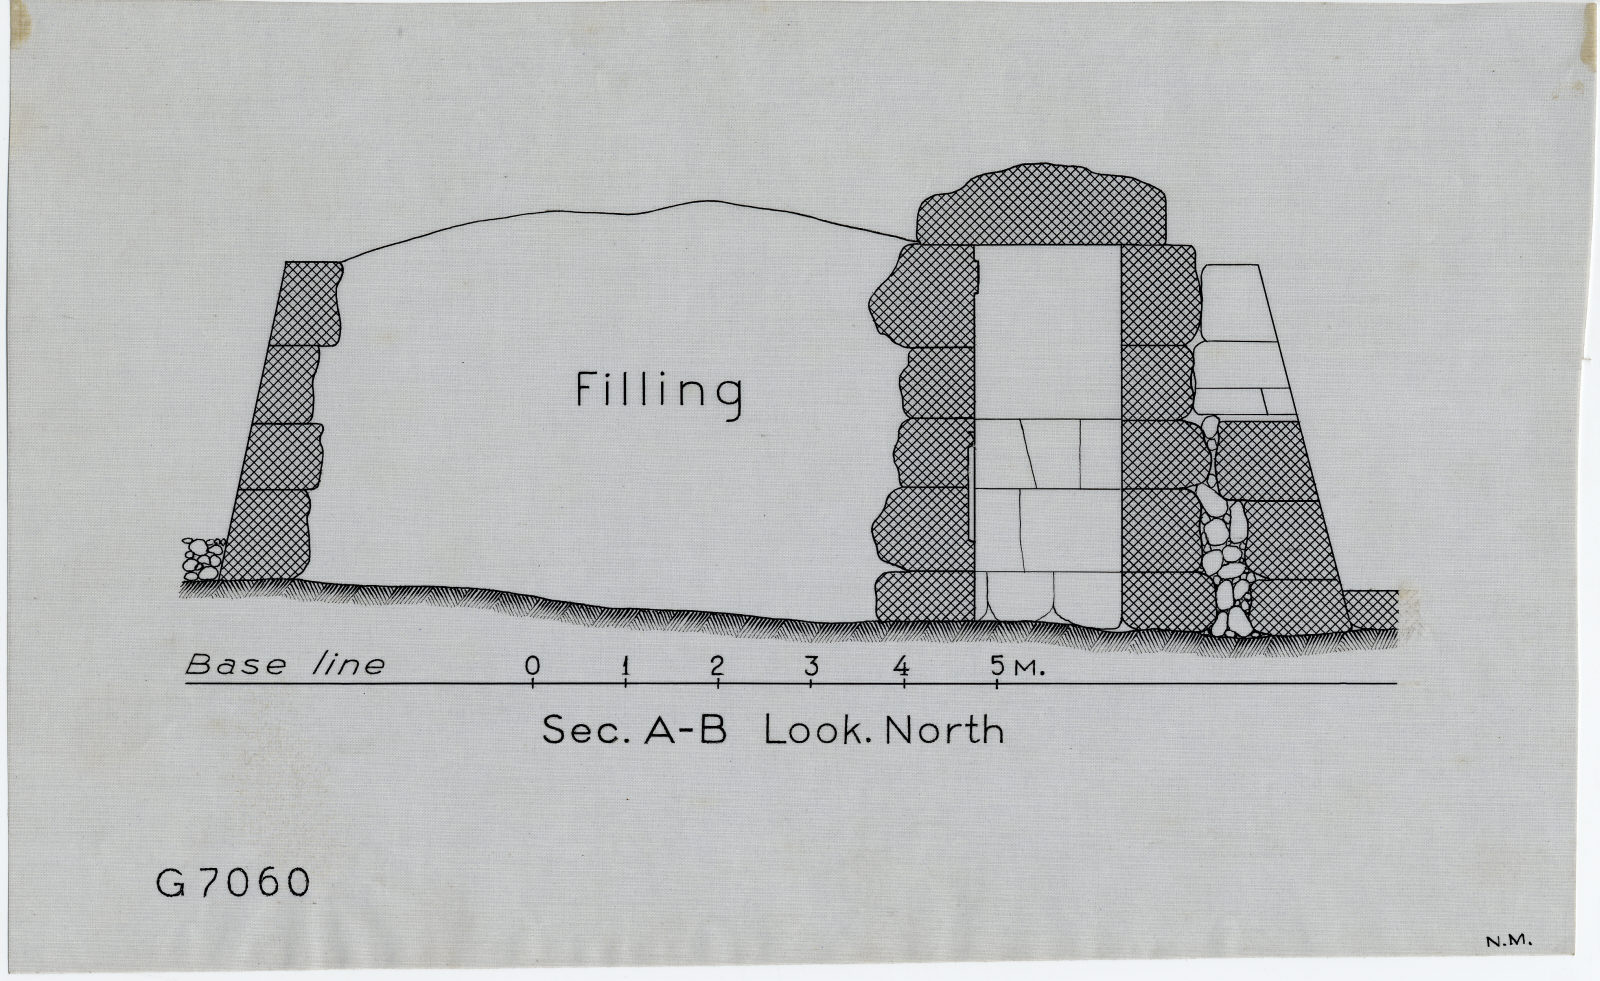 Maps and plans: Section of G 7060